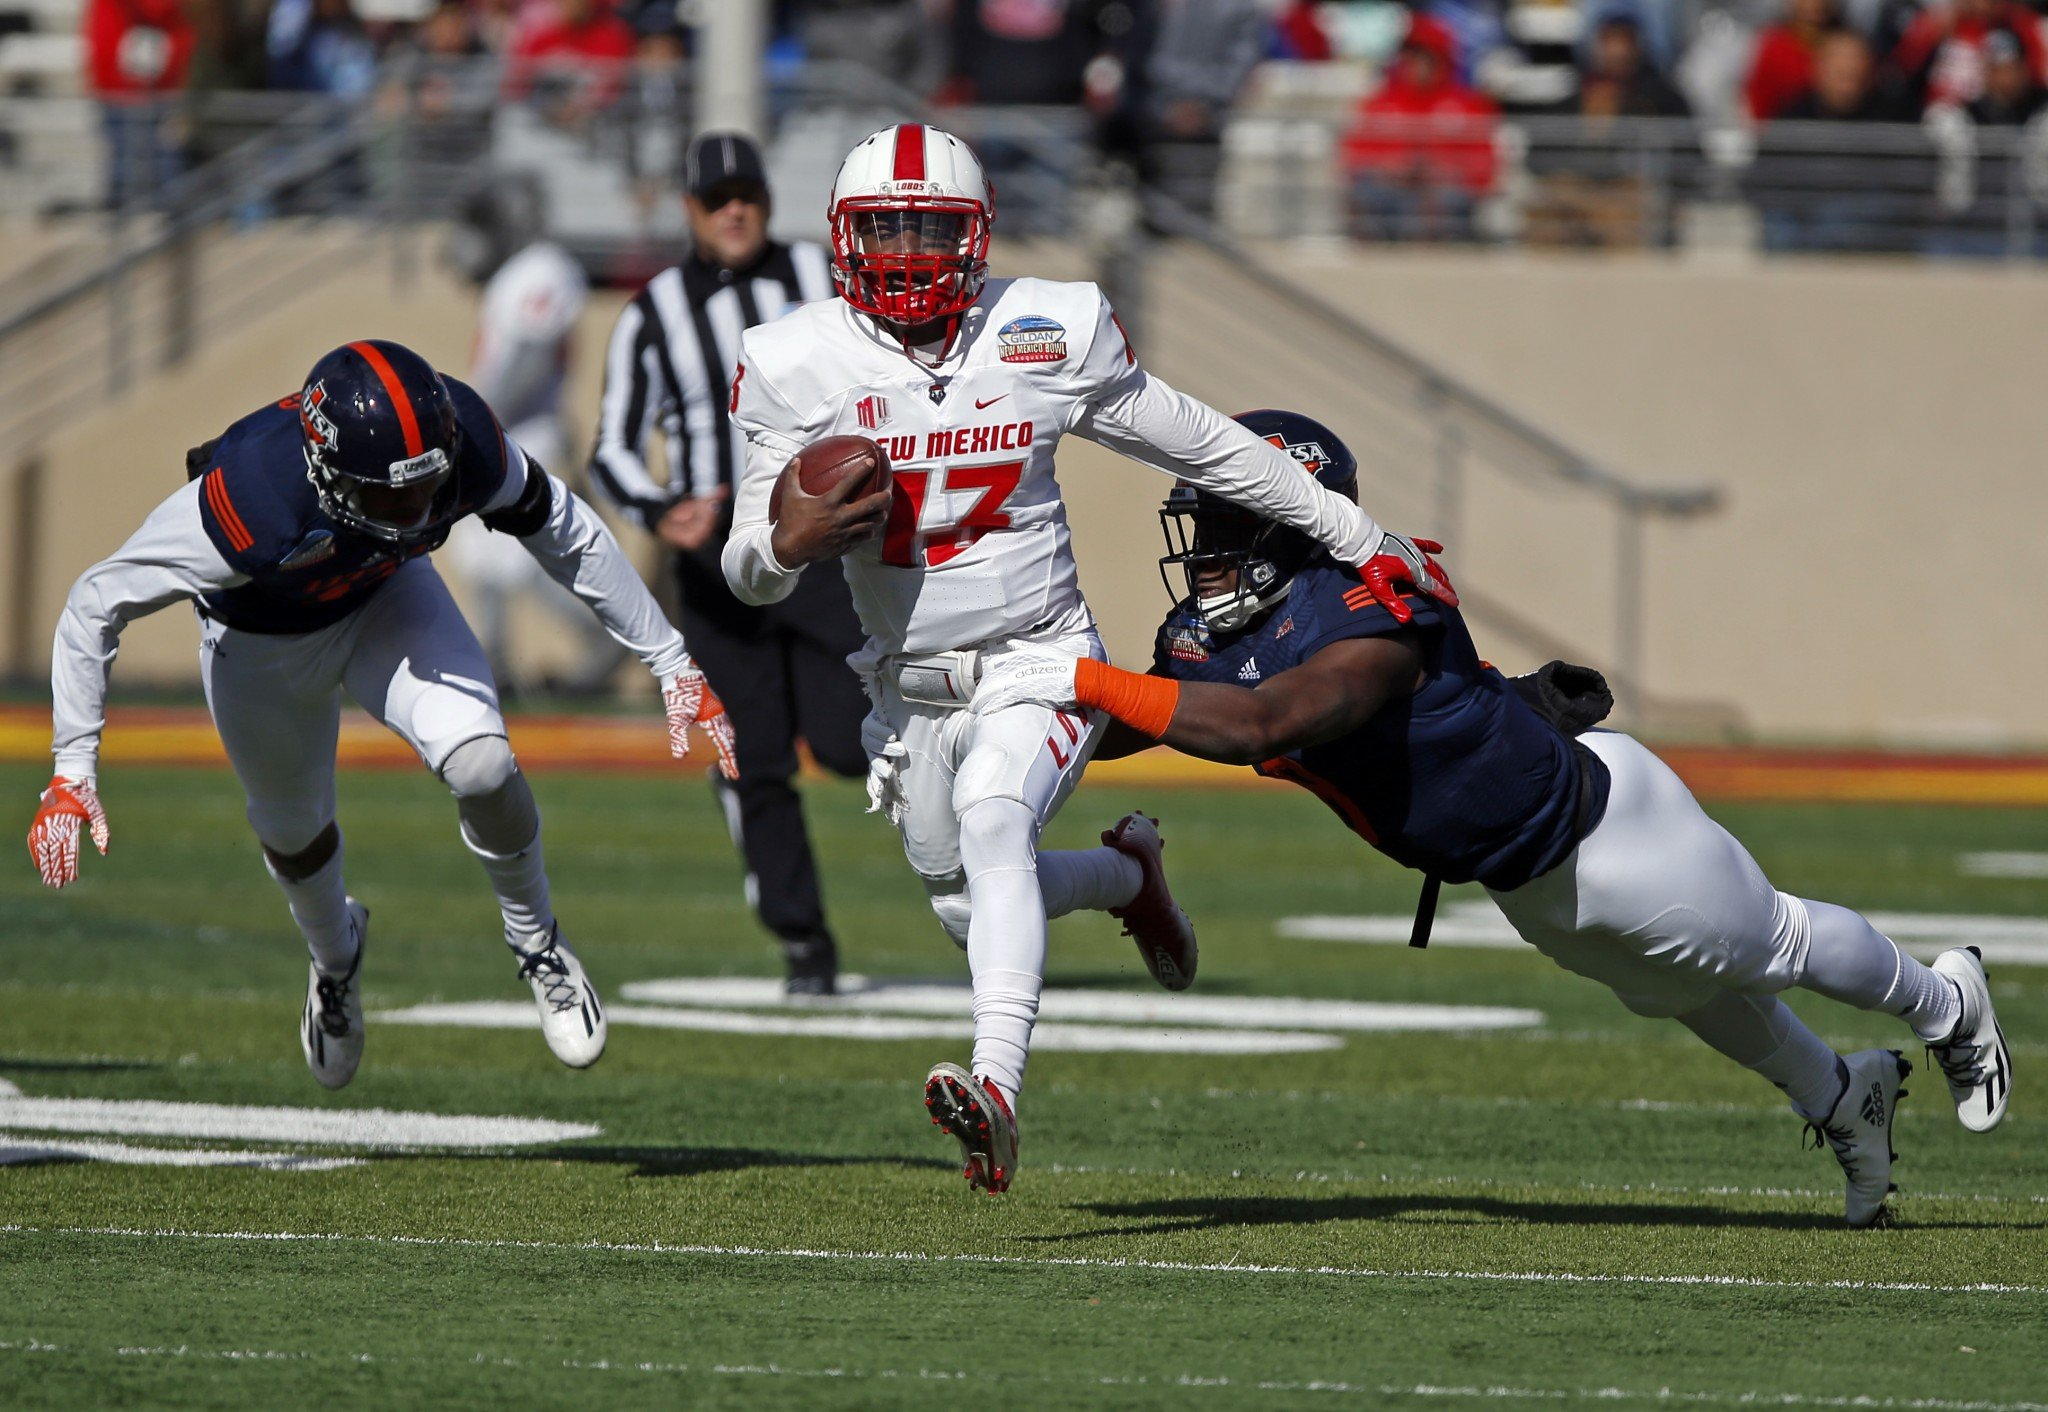 Quarterback Lamar Jordan led New Mexico with 81 rushing yards in its win over UTSA. (AP Photo/Andres Leighton)